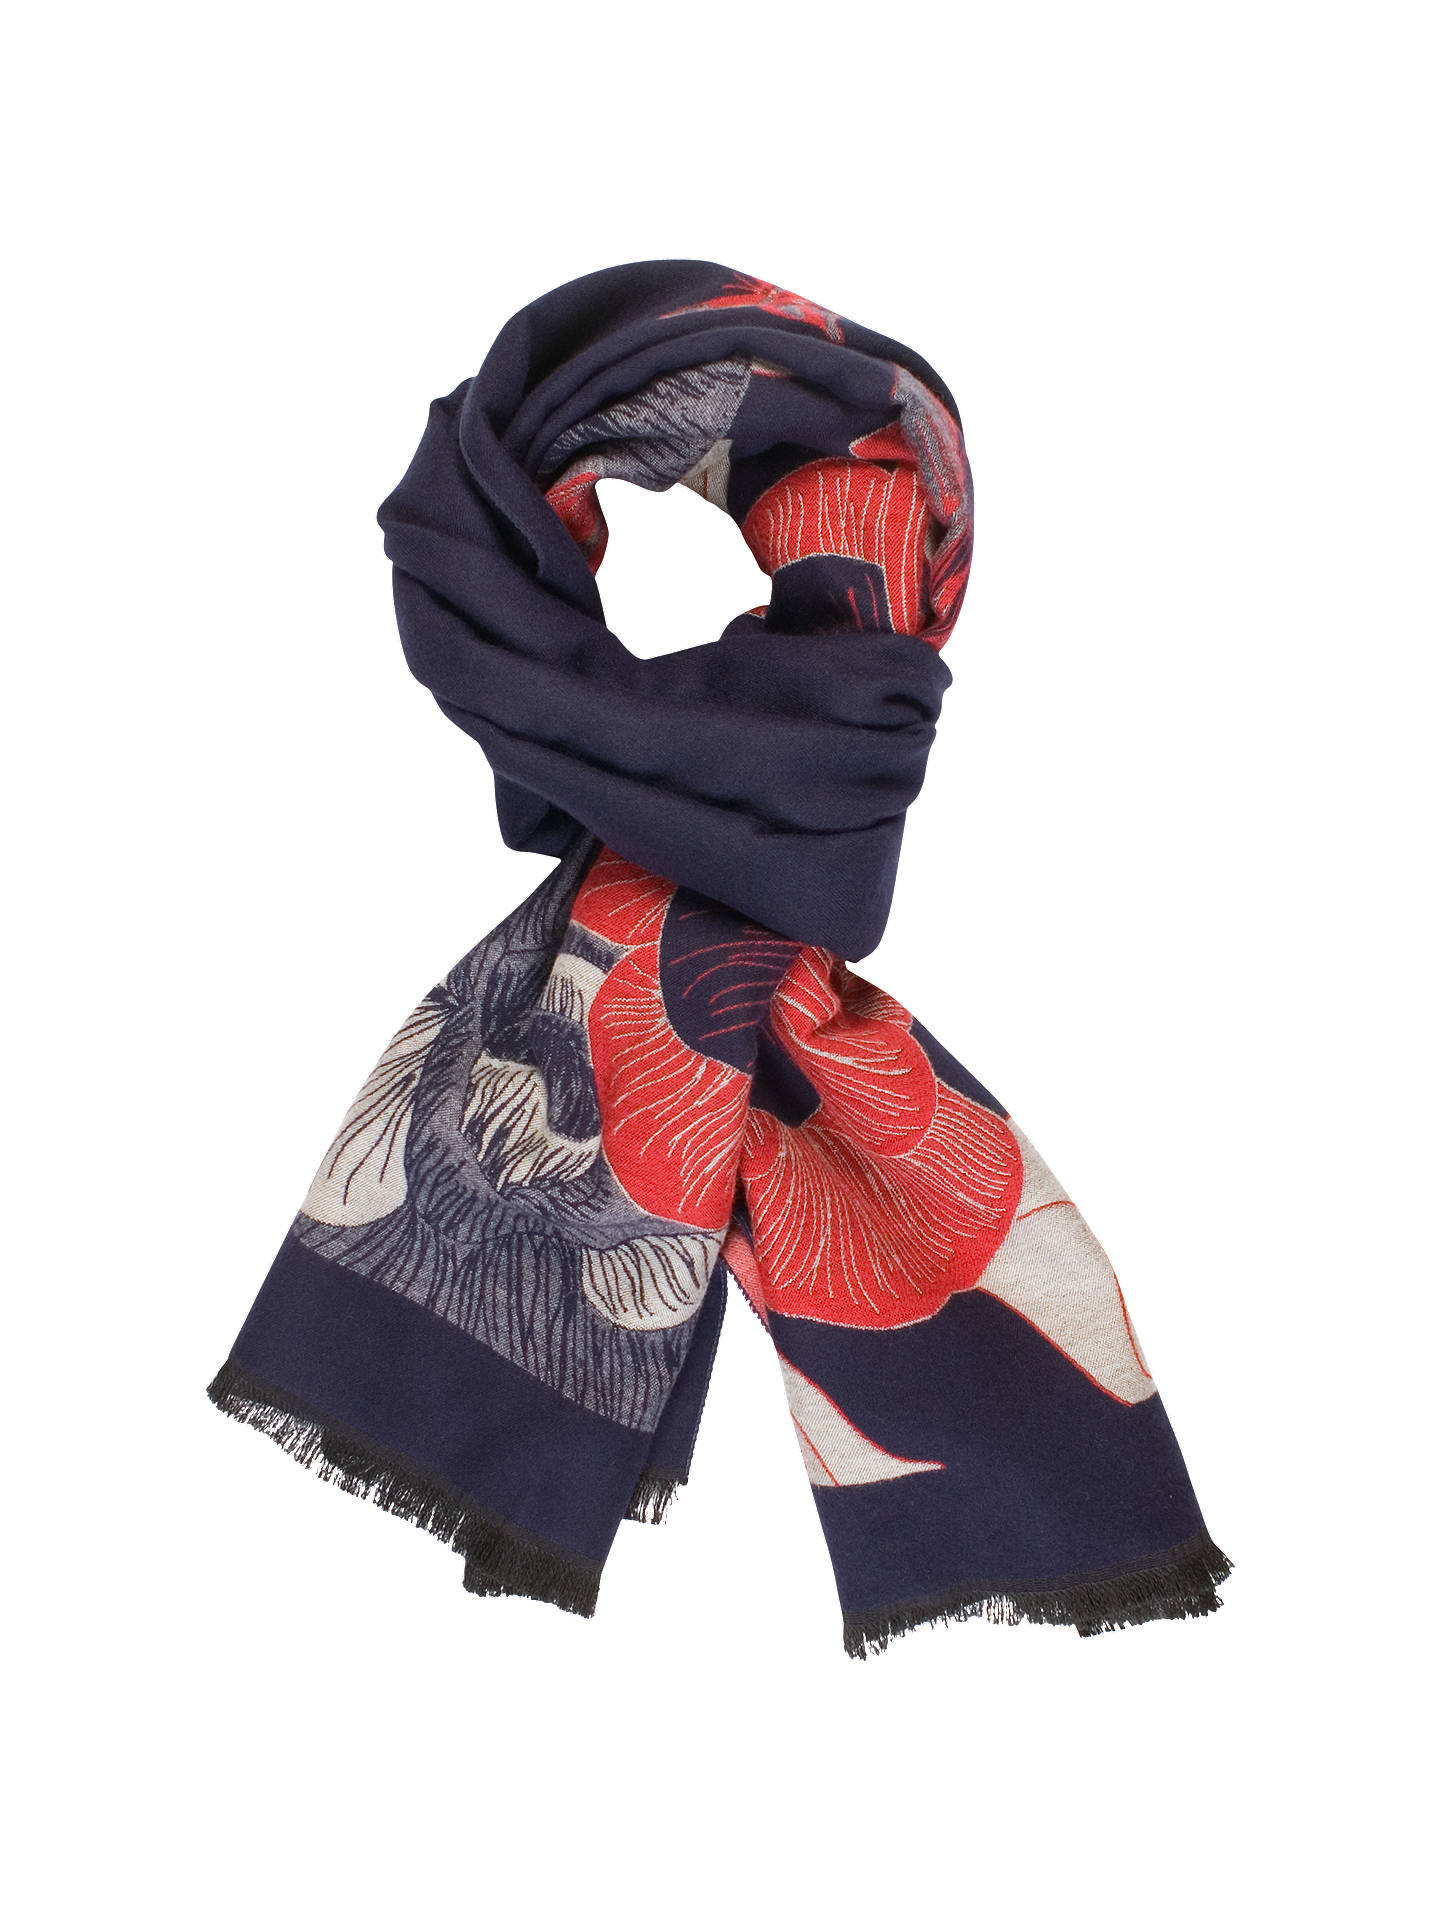 d8848f943 Buy Chesca Butterfly And Floral Print Scarf, Red/Navy Online at  johnlewis.com ...